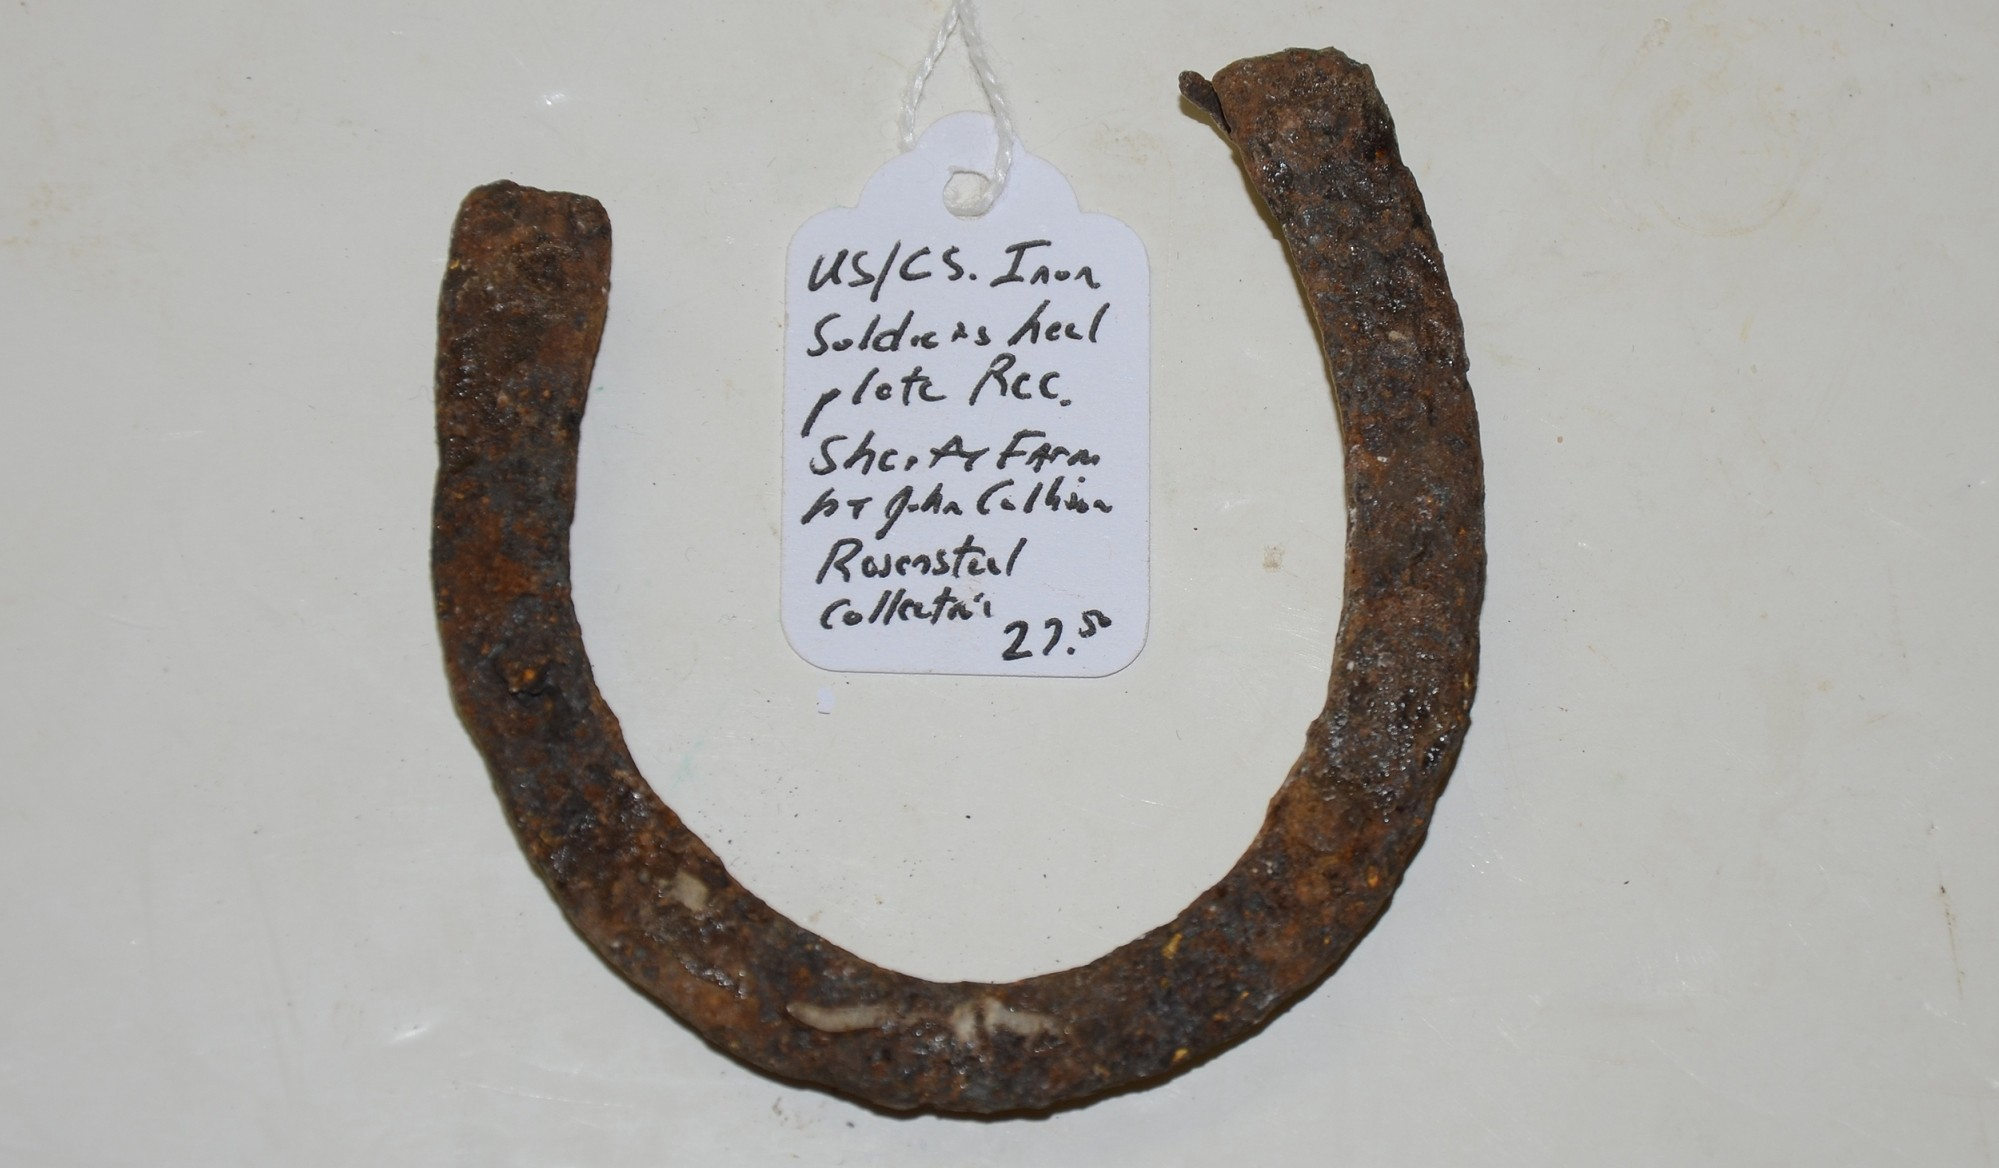 US/CS IRON SOLDIER'S HEEL PLATE RECOVERED ON THE SHERFY FARM, GETTYSBURG